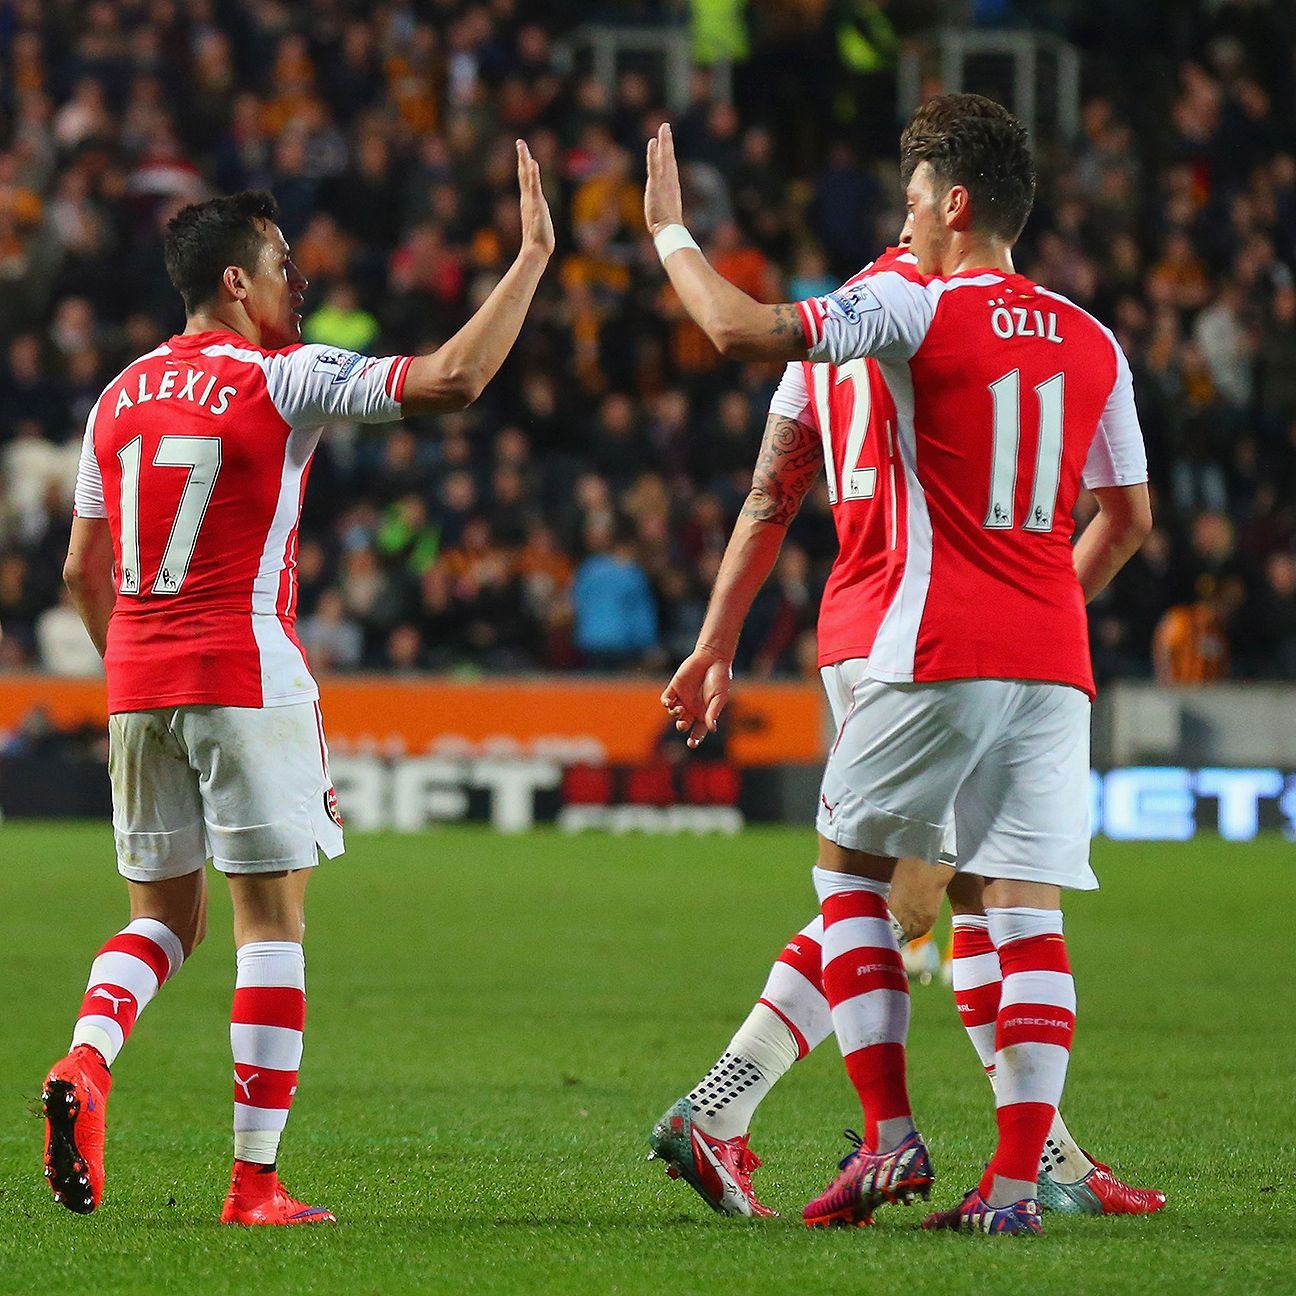 Alexis Sanchez and Mesut Ozil teamed up to terrorise Hull in the first half.